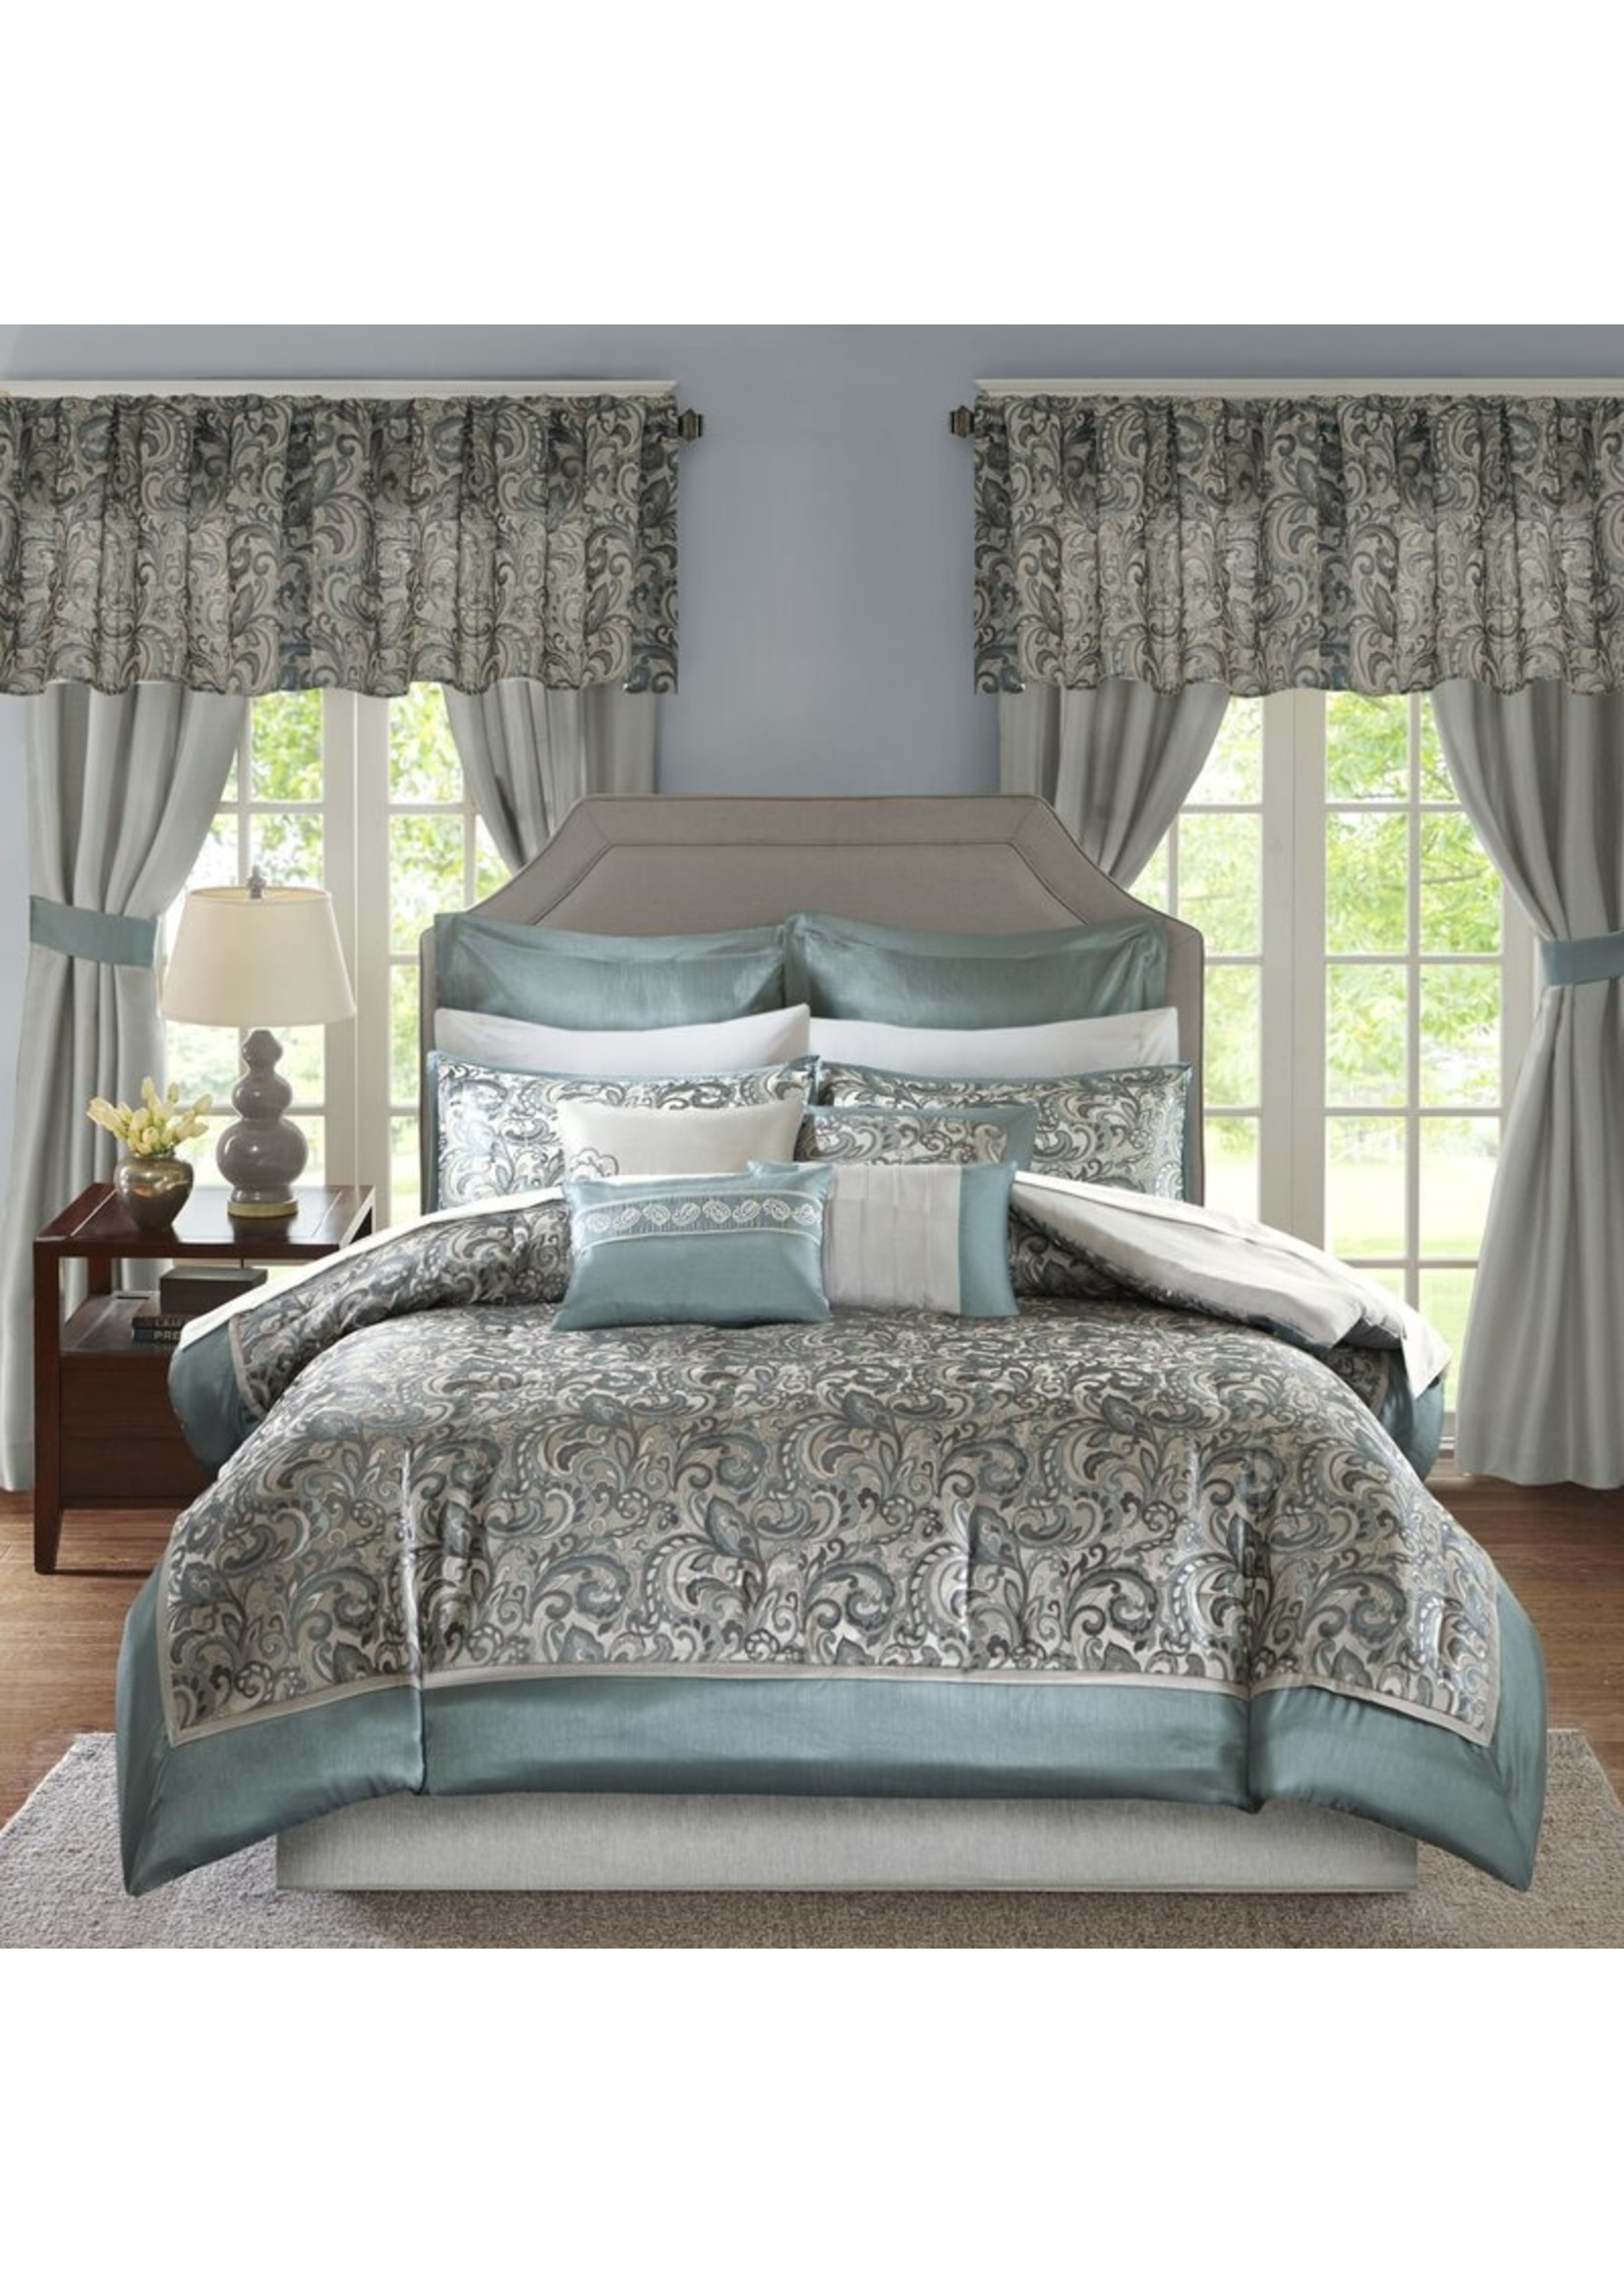 *Cal King - Wightmans Paisley 24 Piece Comforter Bed-in-a-bag - Final Sale